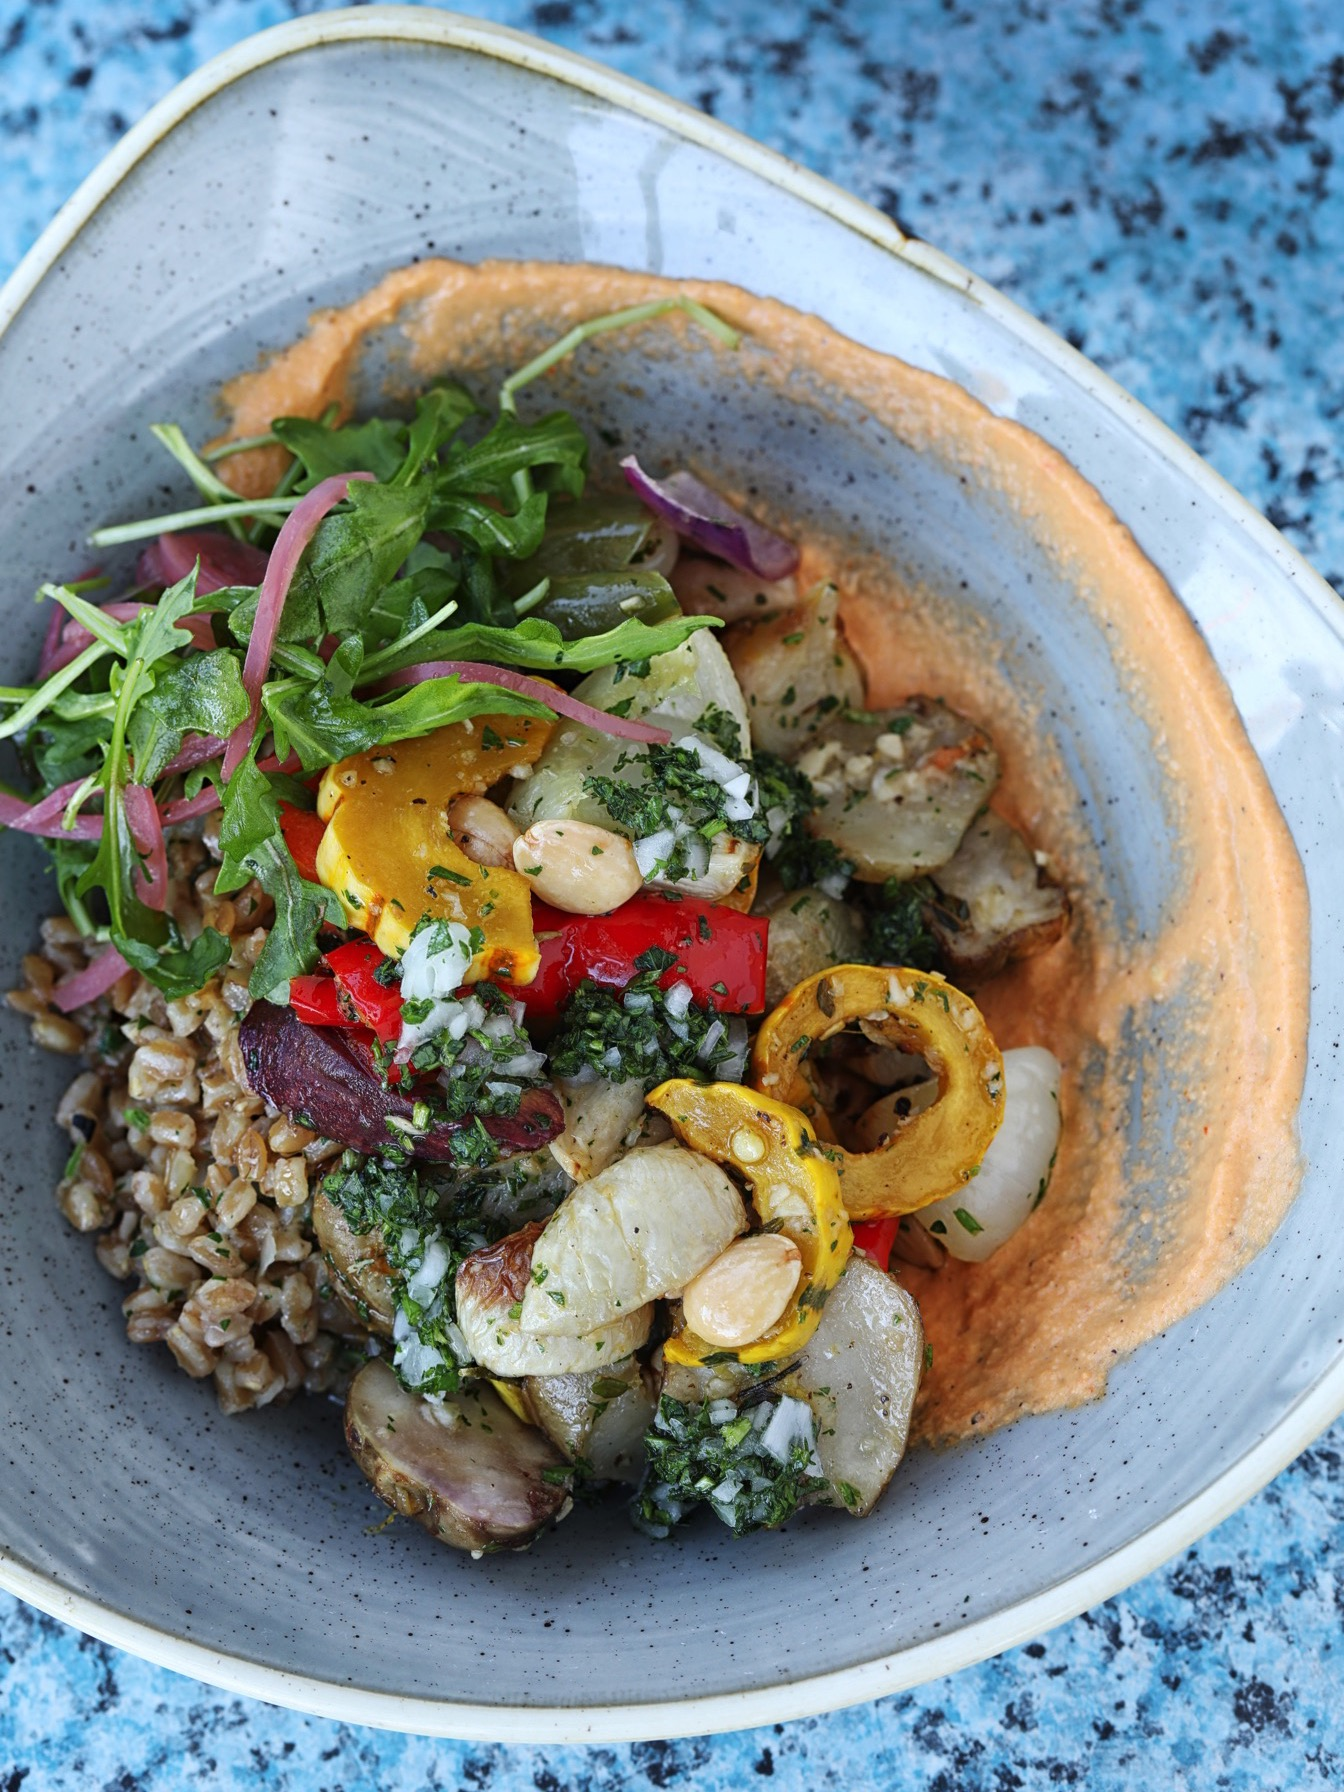 The Fishery's Roasted Seasonal Vegetables with Ancient Grains